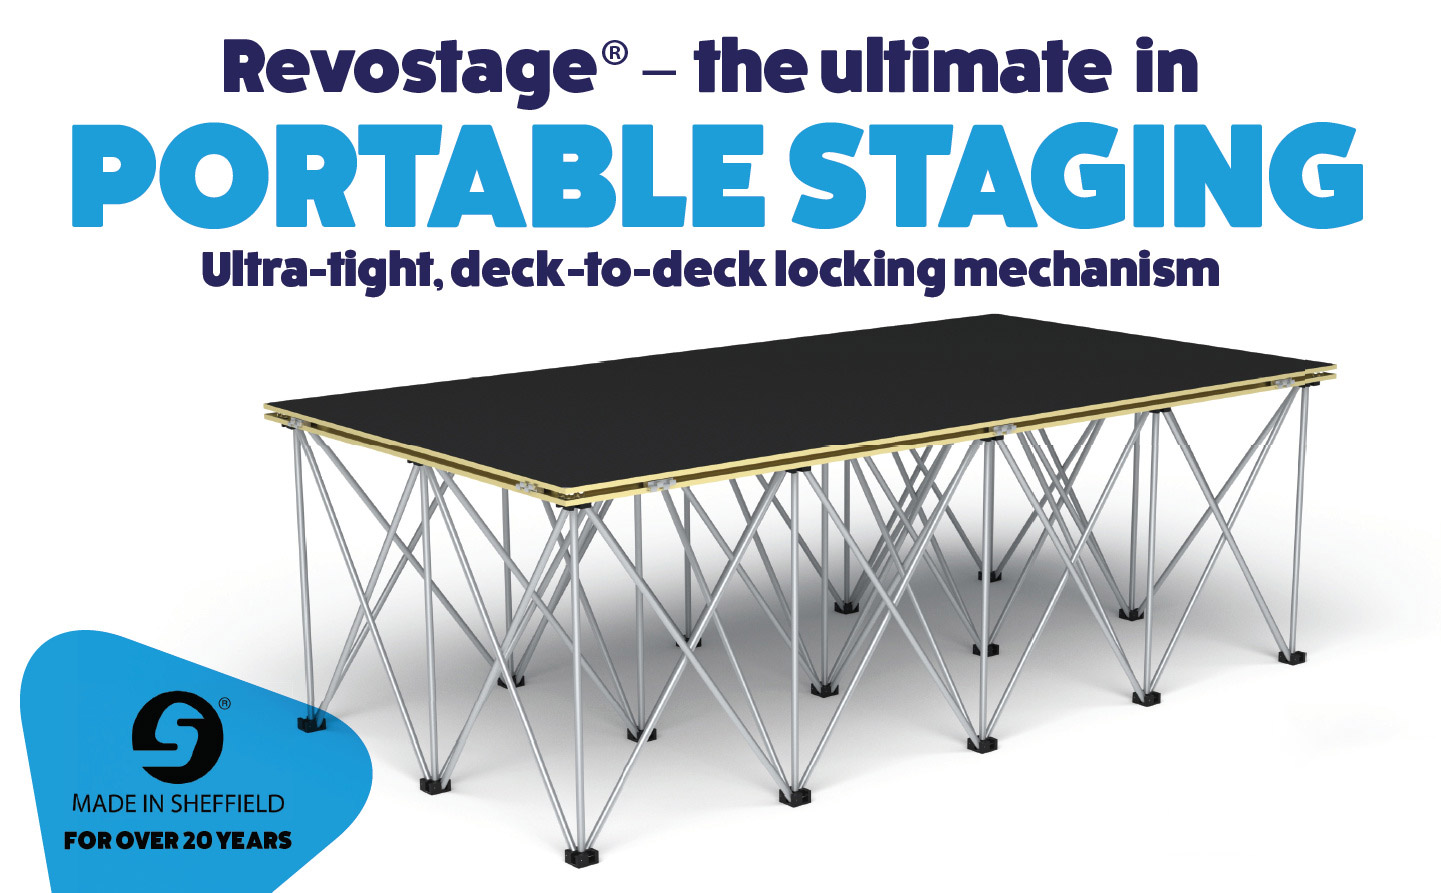 Revostage is the ultimate in portable staging